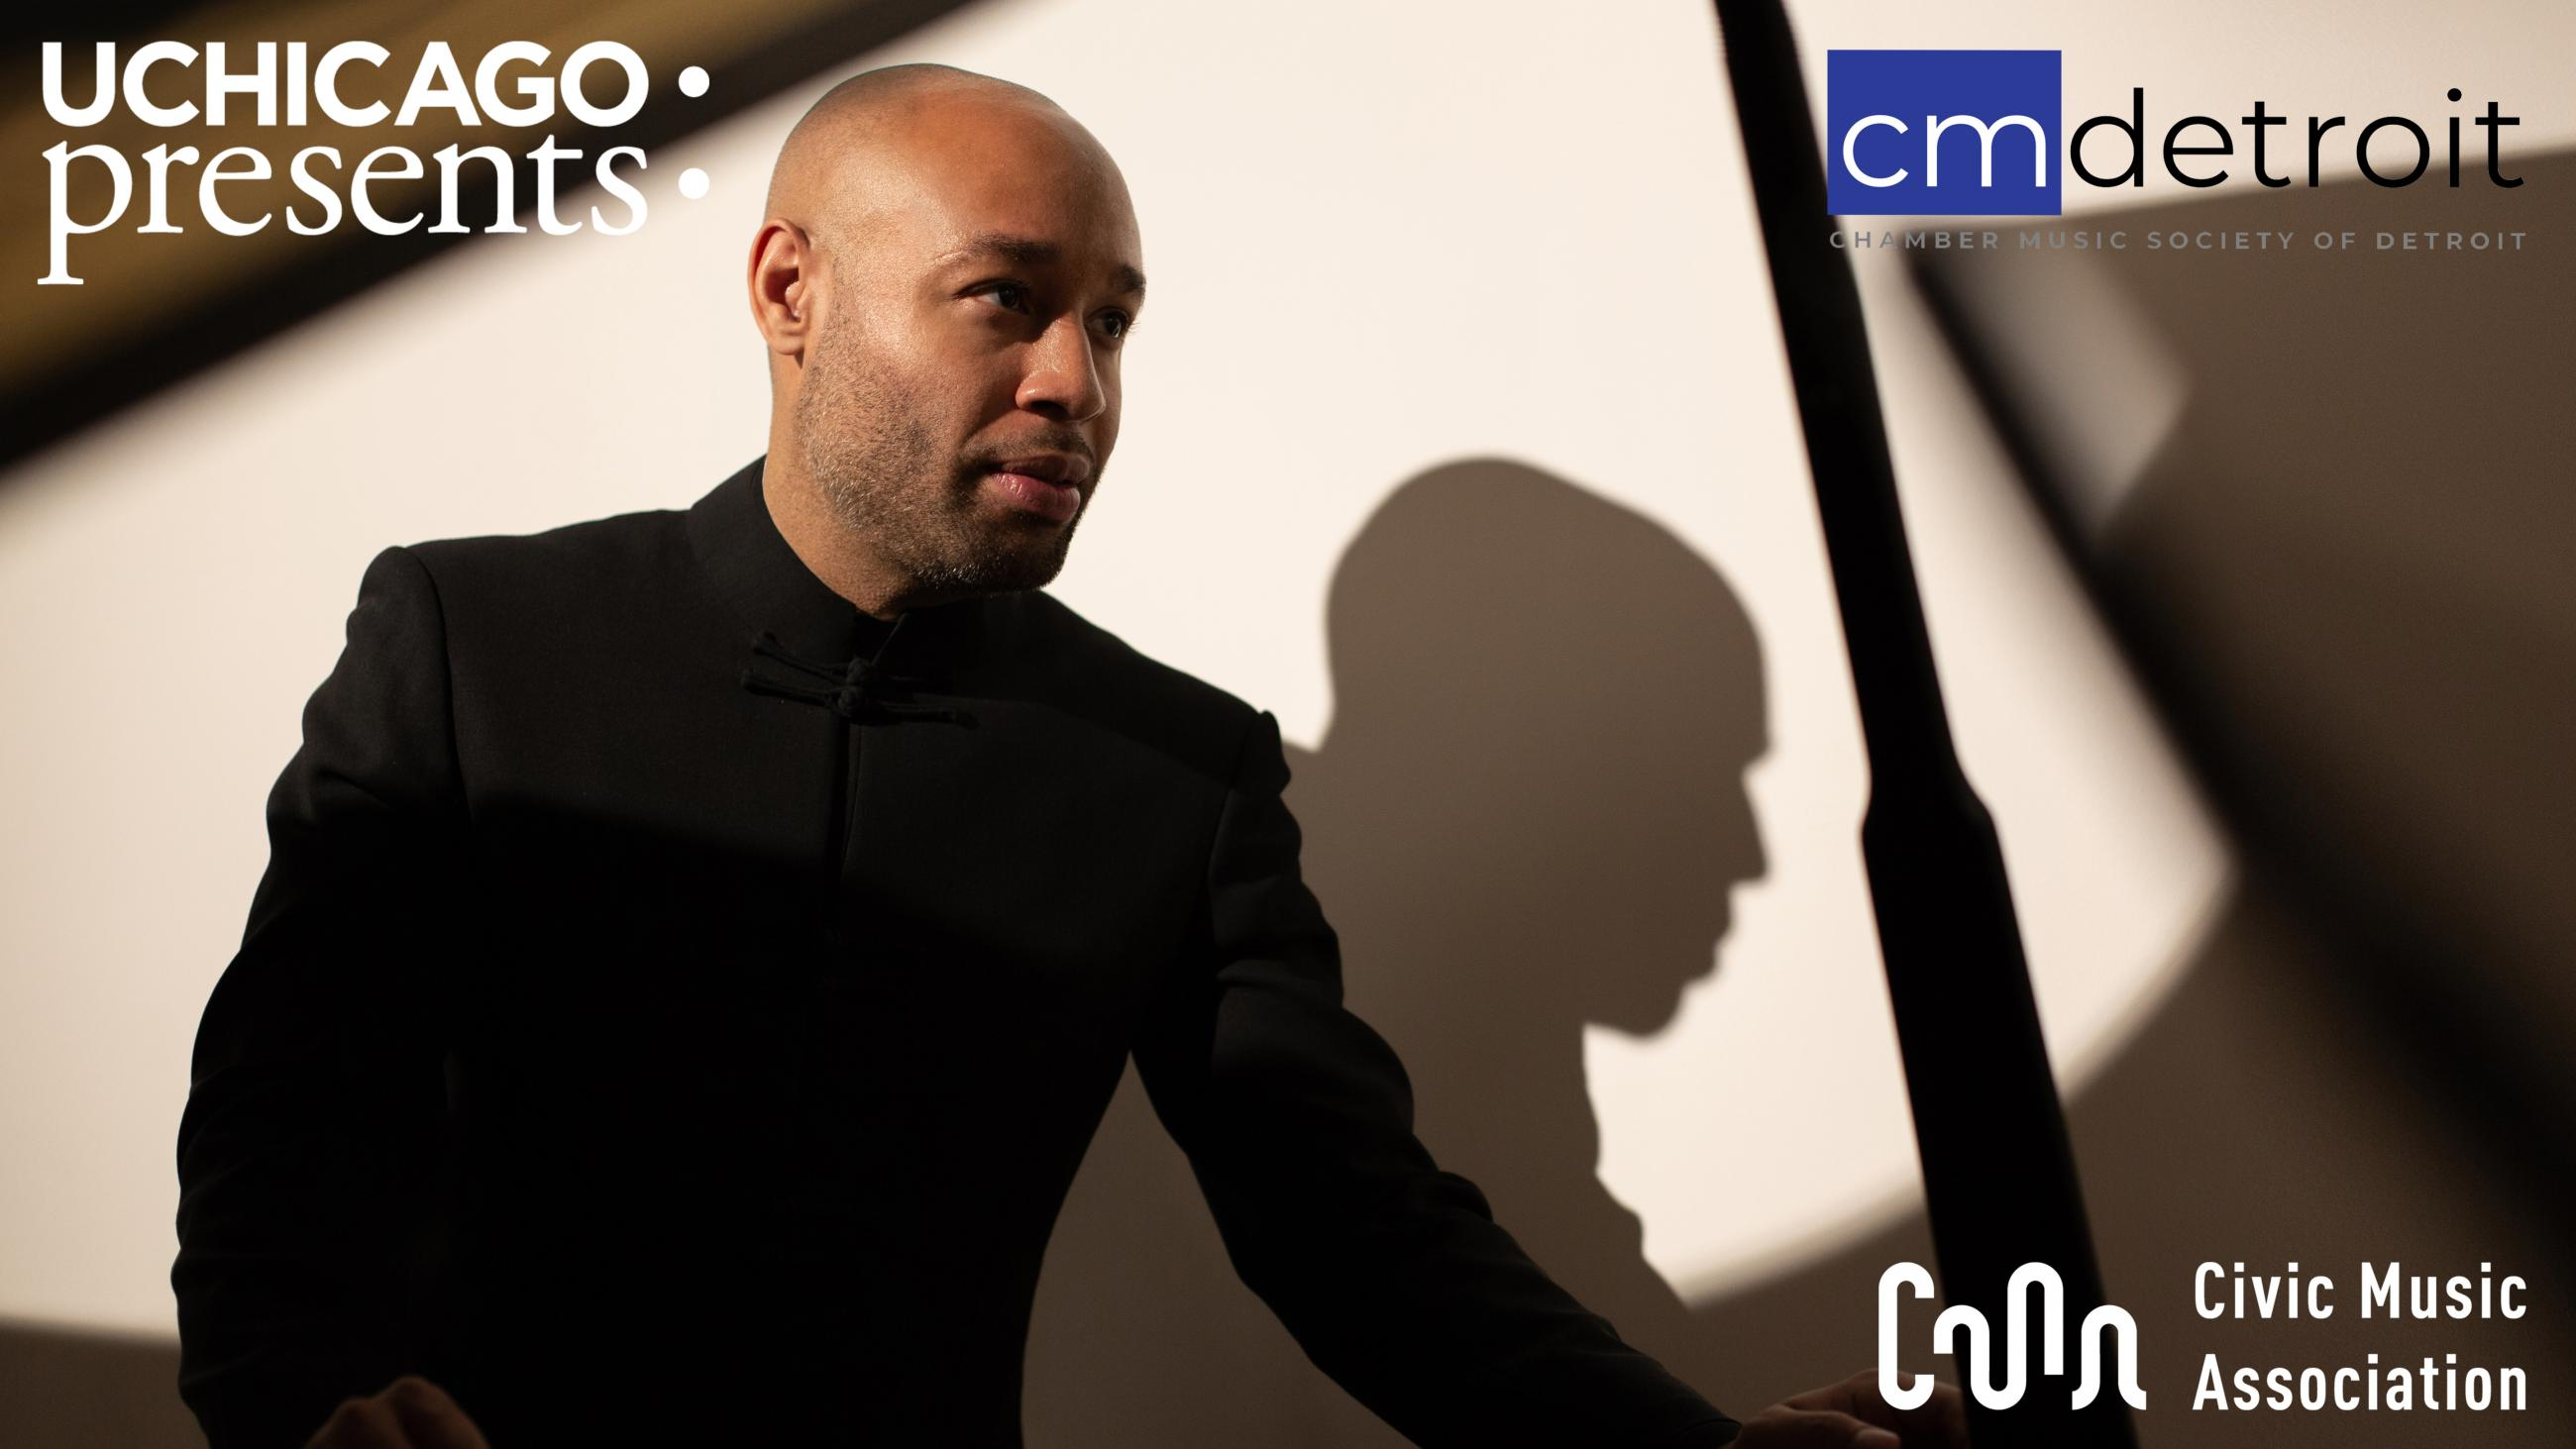 Aaron Diehl standing next to an open grand piano, overplayed with logos for UChicago Presents, Chamber Music Society of Detroit, and Civic Music Association of Des Moines